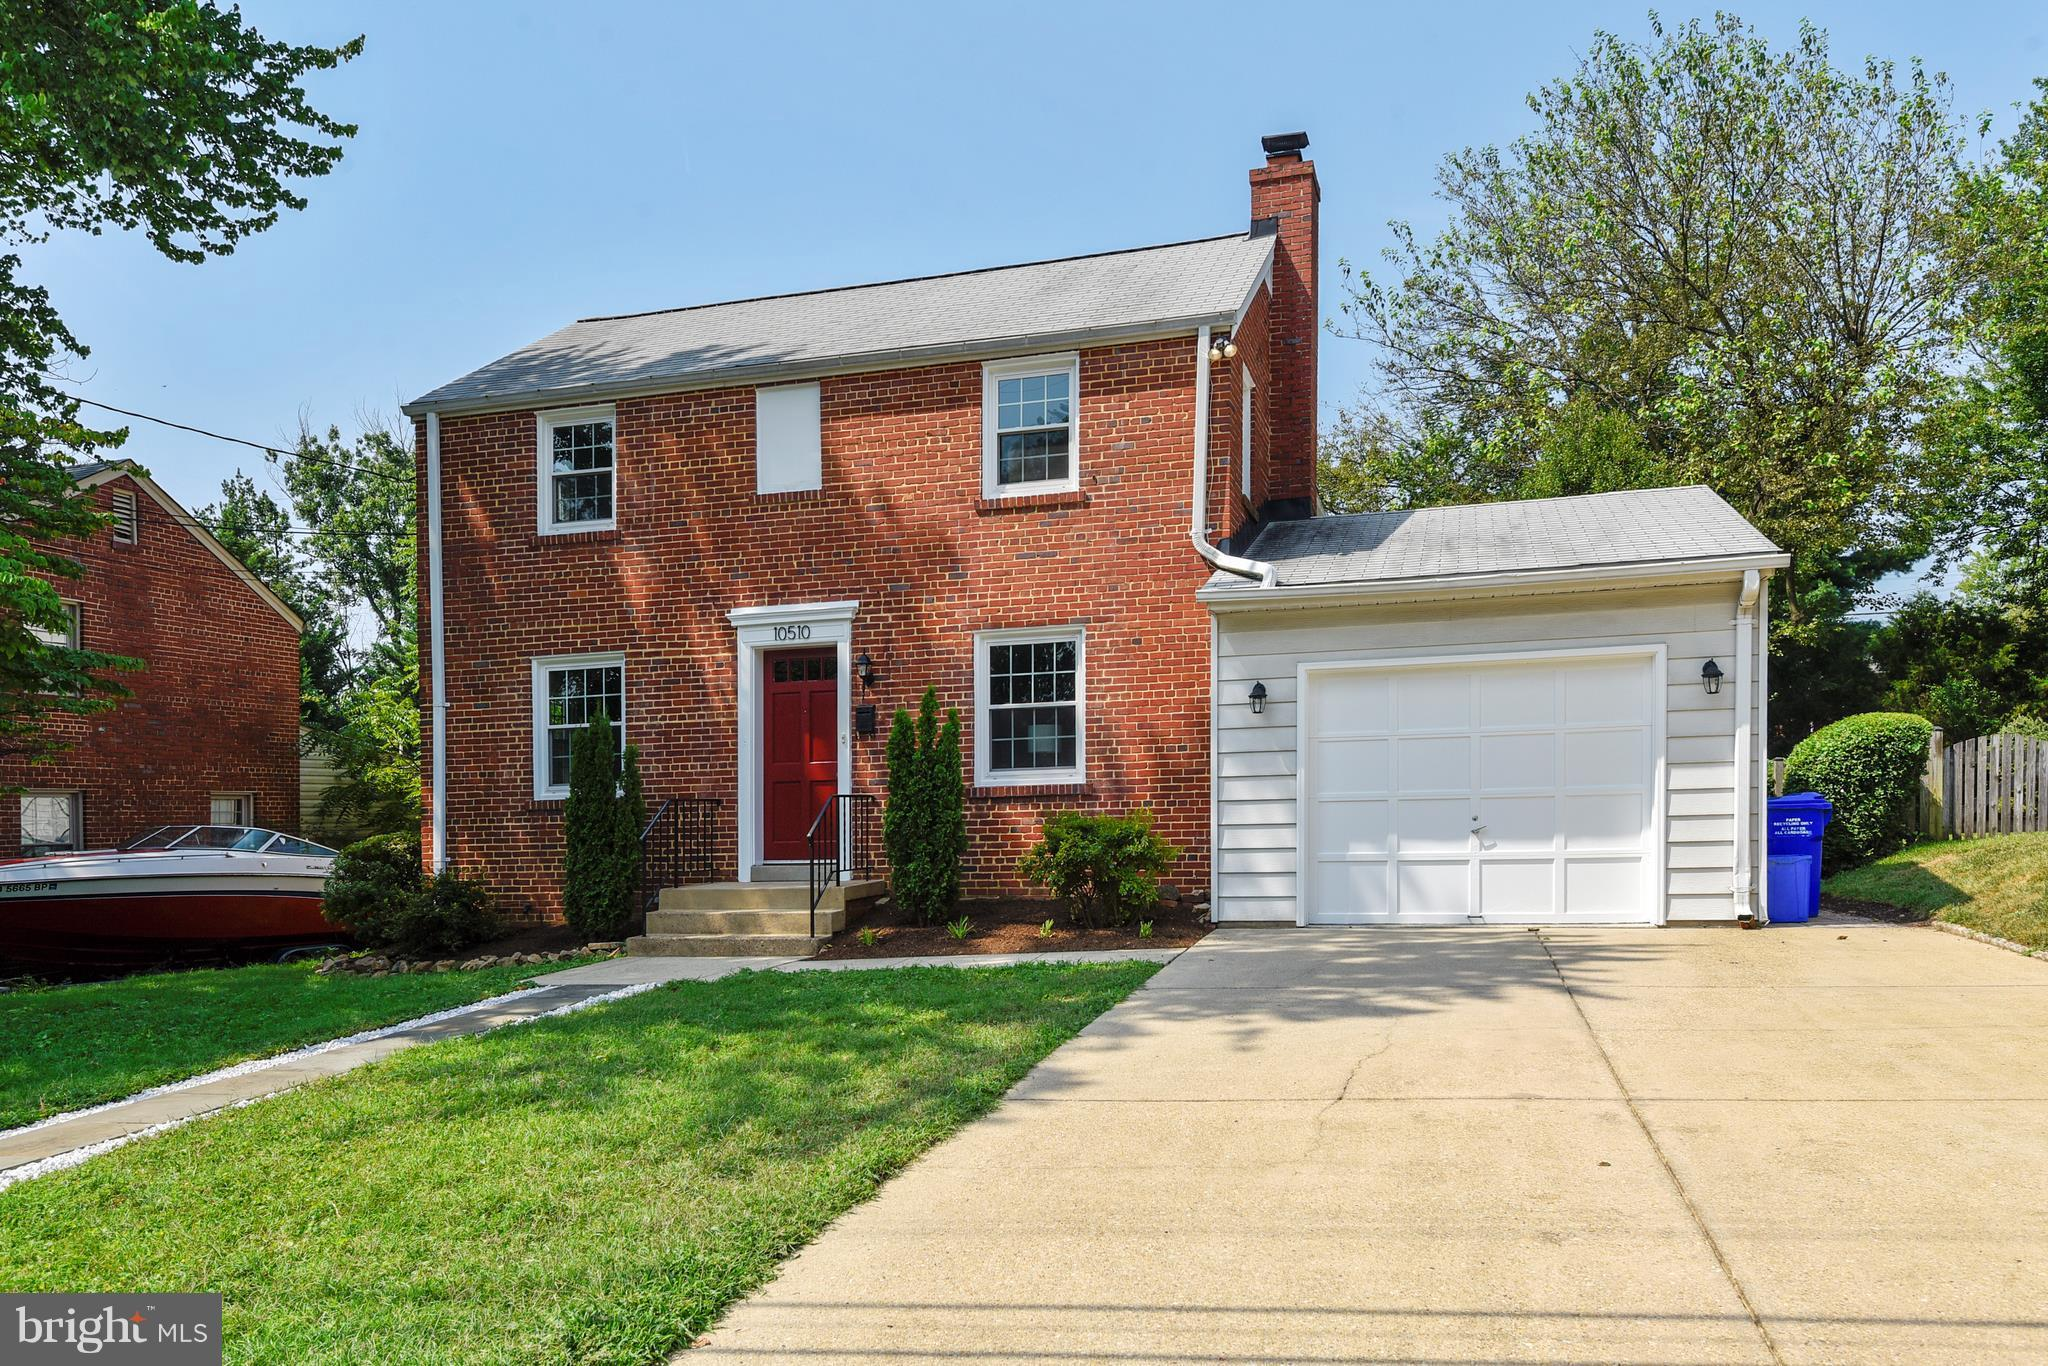 10510 AMHERST AVENUE, SILVER SPRING, MD 20902